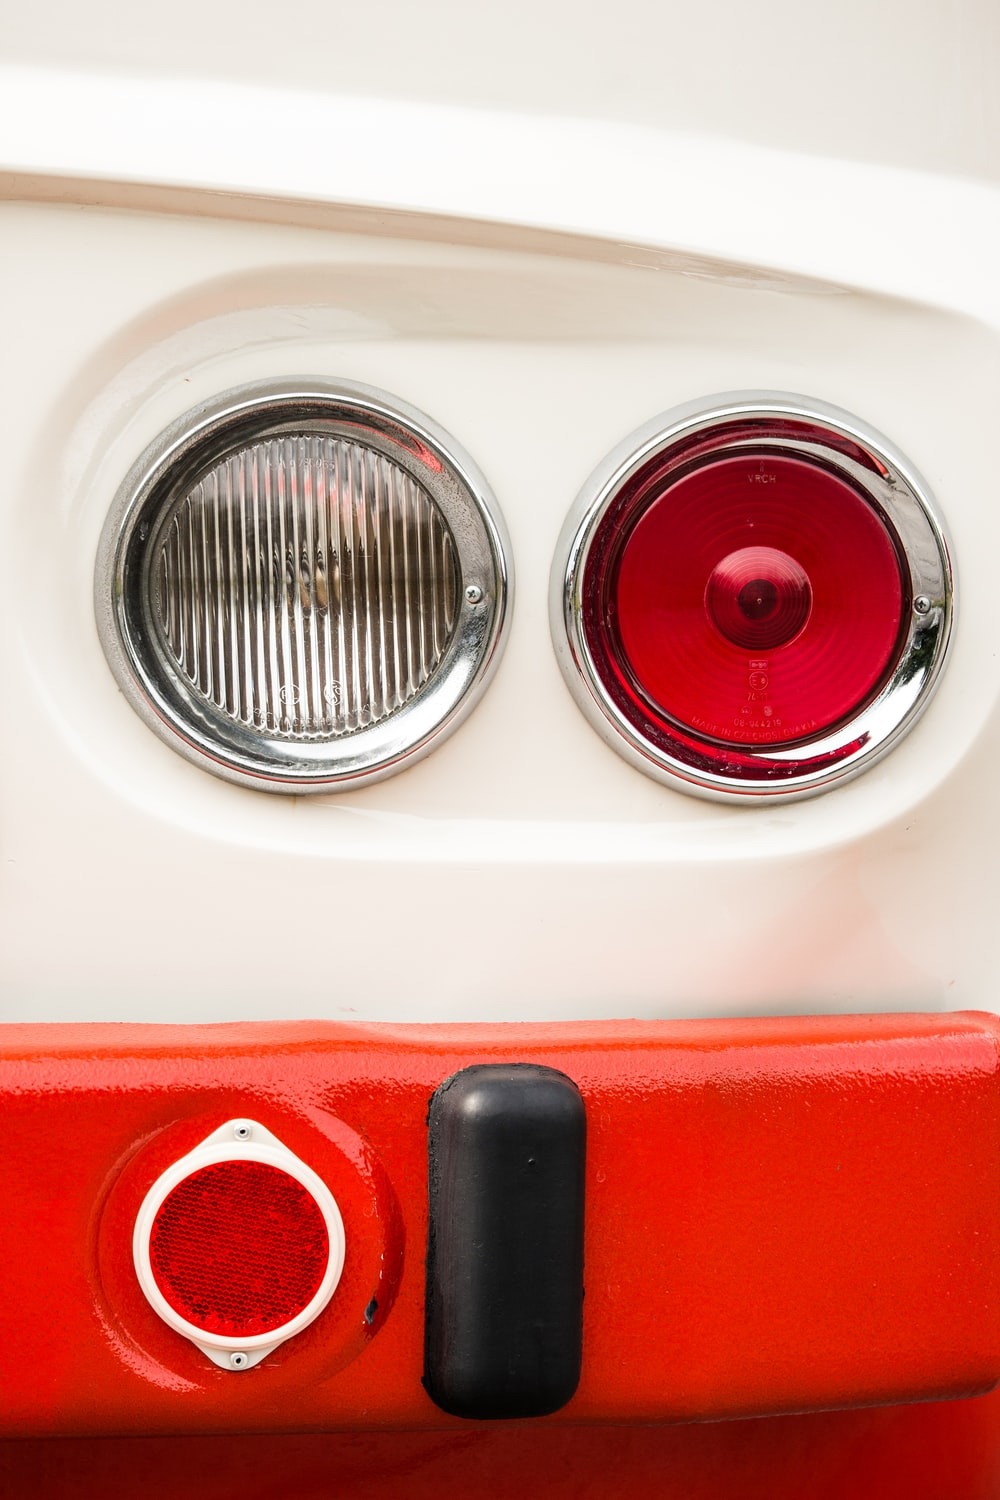 red and black car light